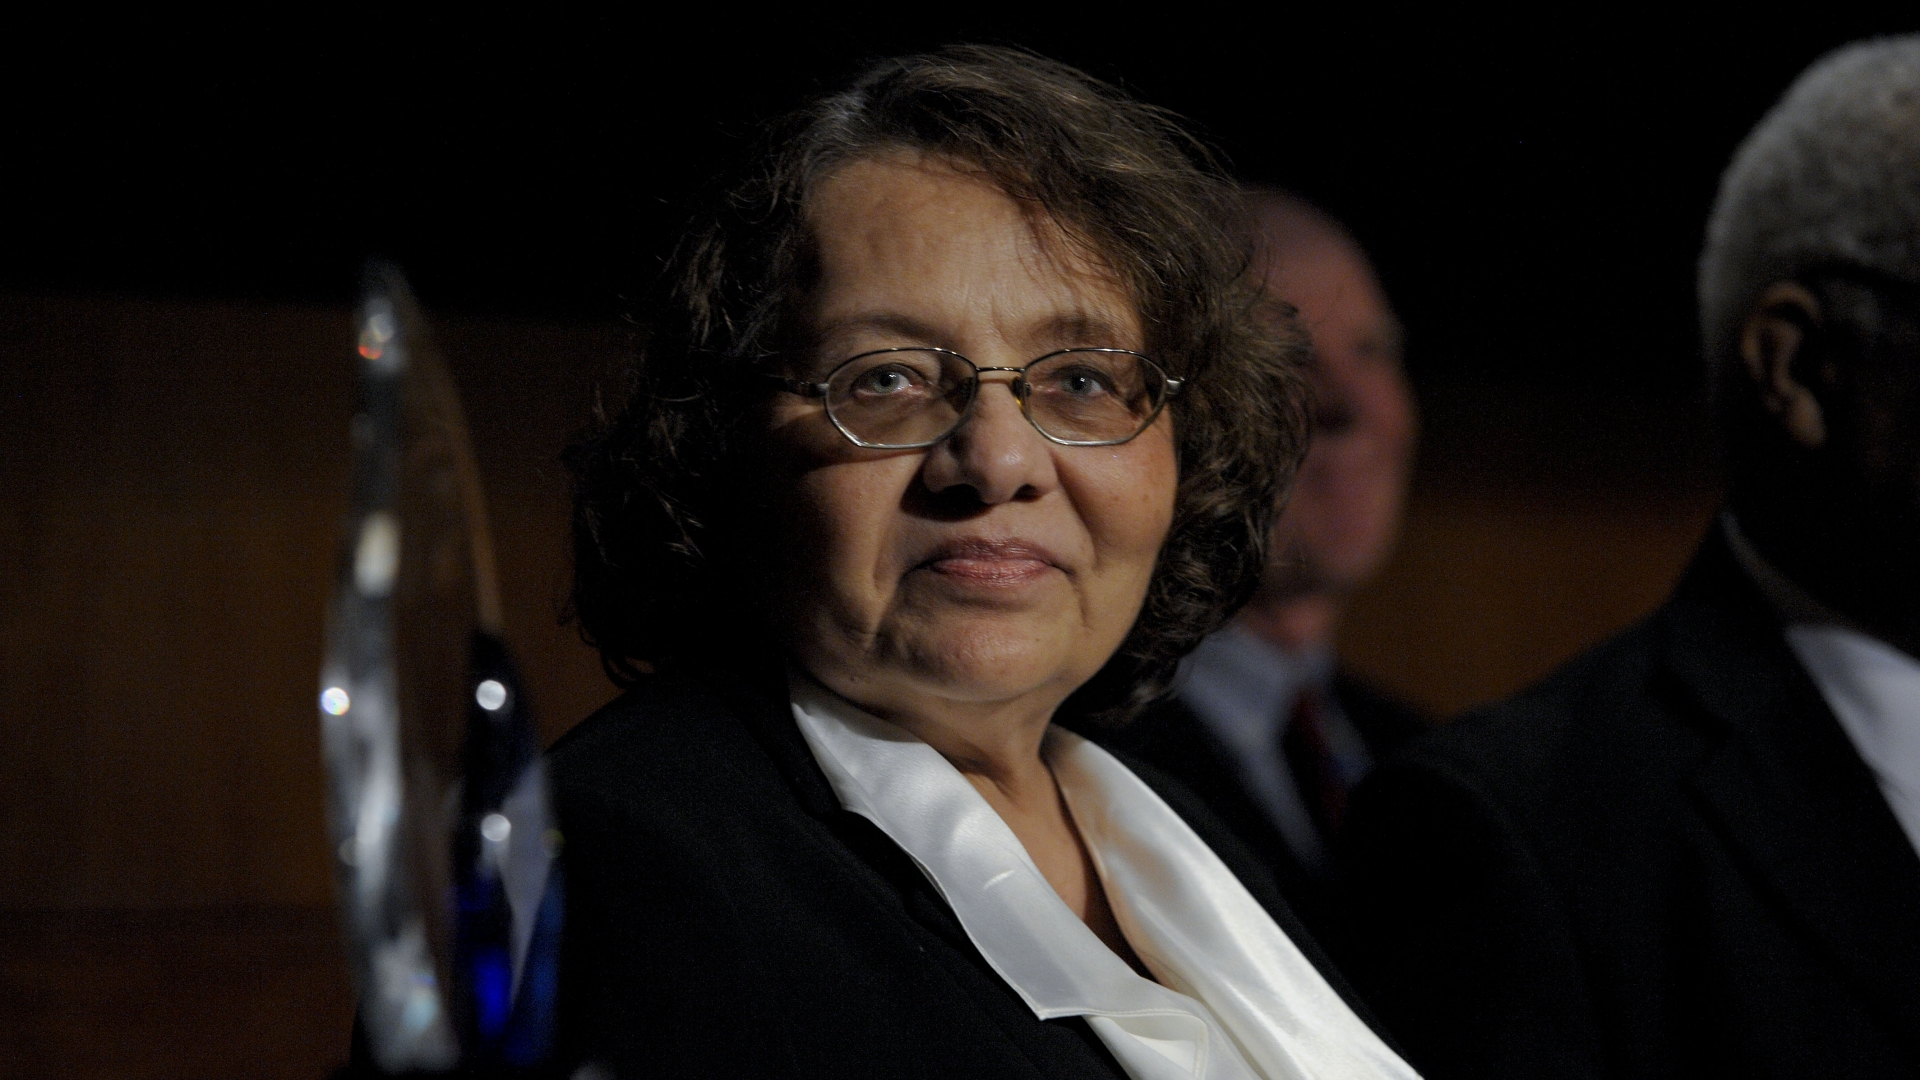 Diane Nash at the 2011 Search For Common Ground Awards at the Carnegie Institution for Science, 2011. (Credit: Leigh Vogel/Getty Images)